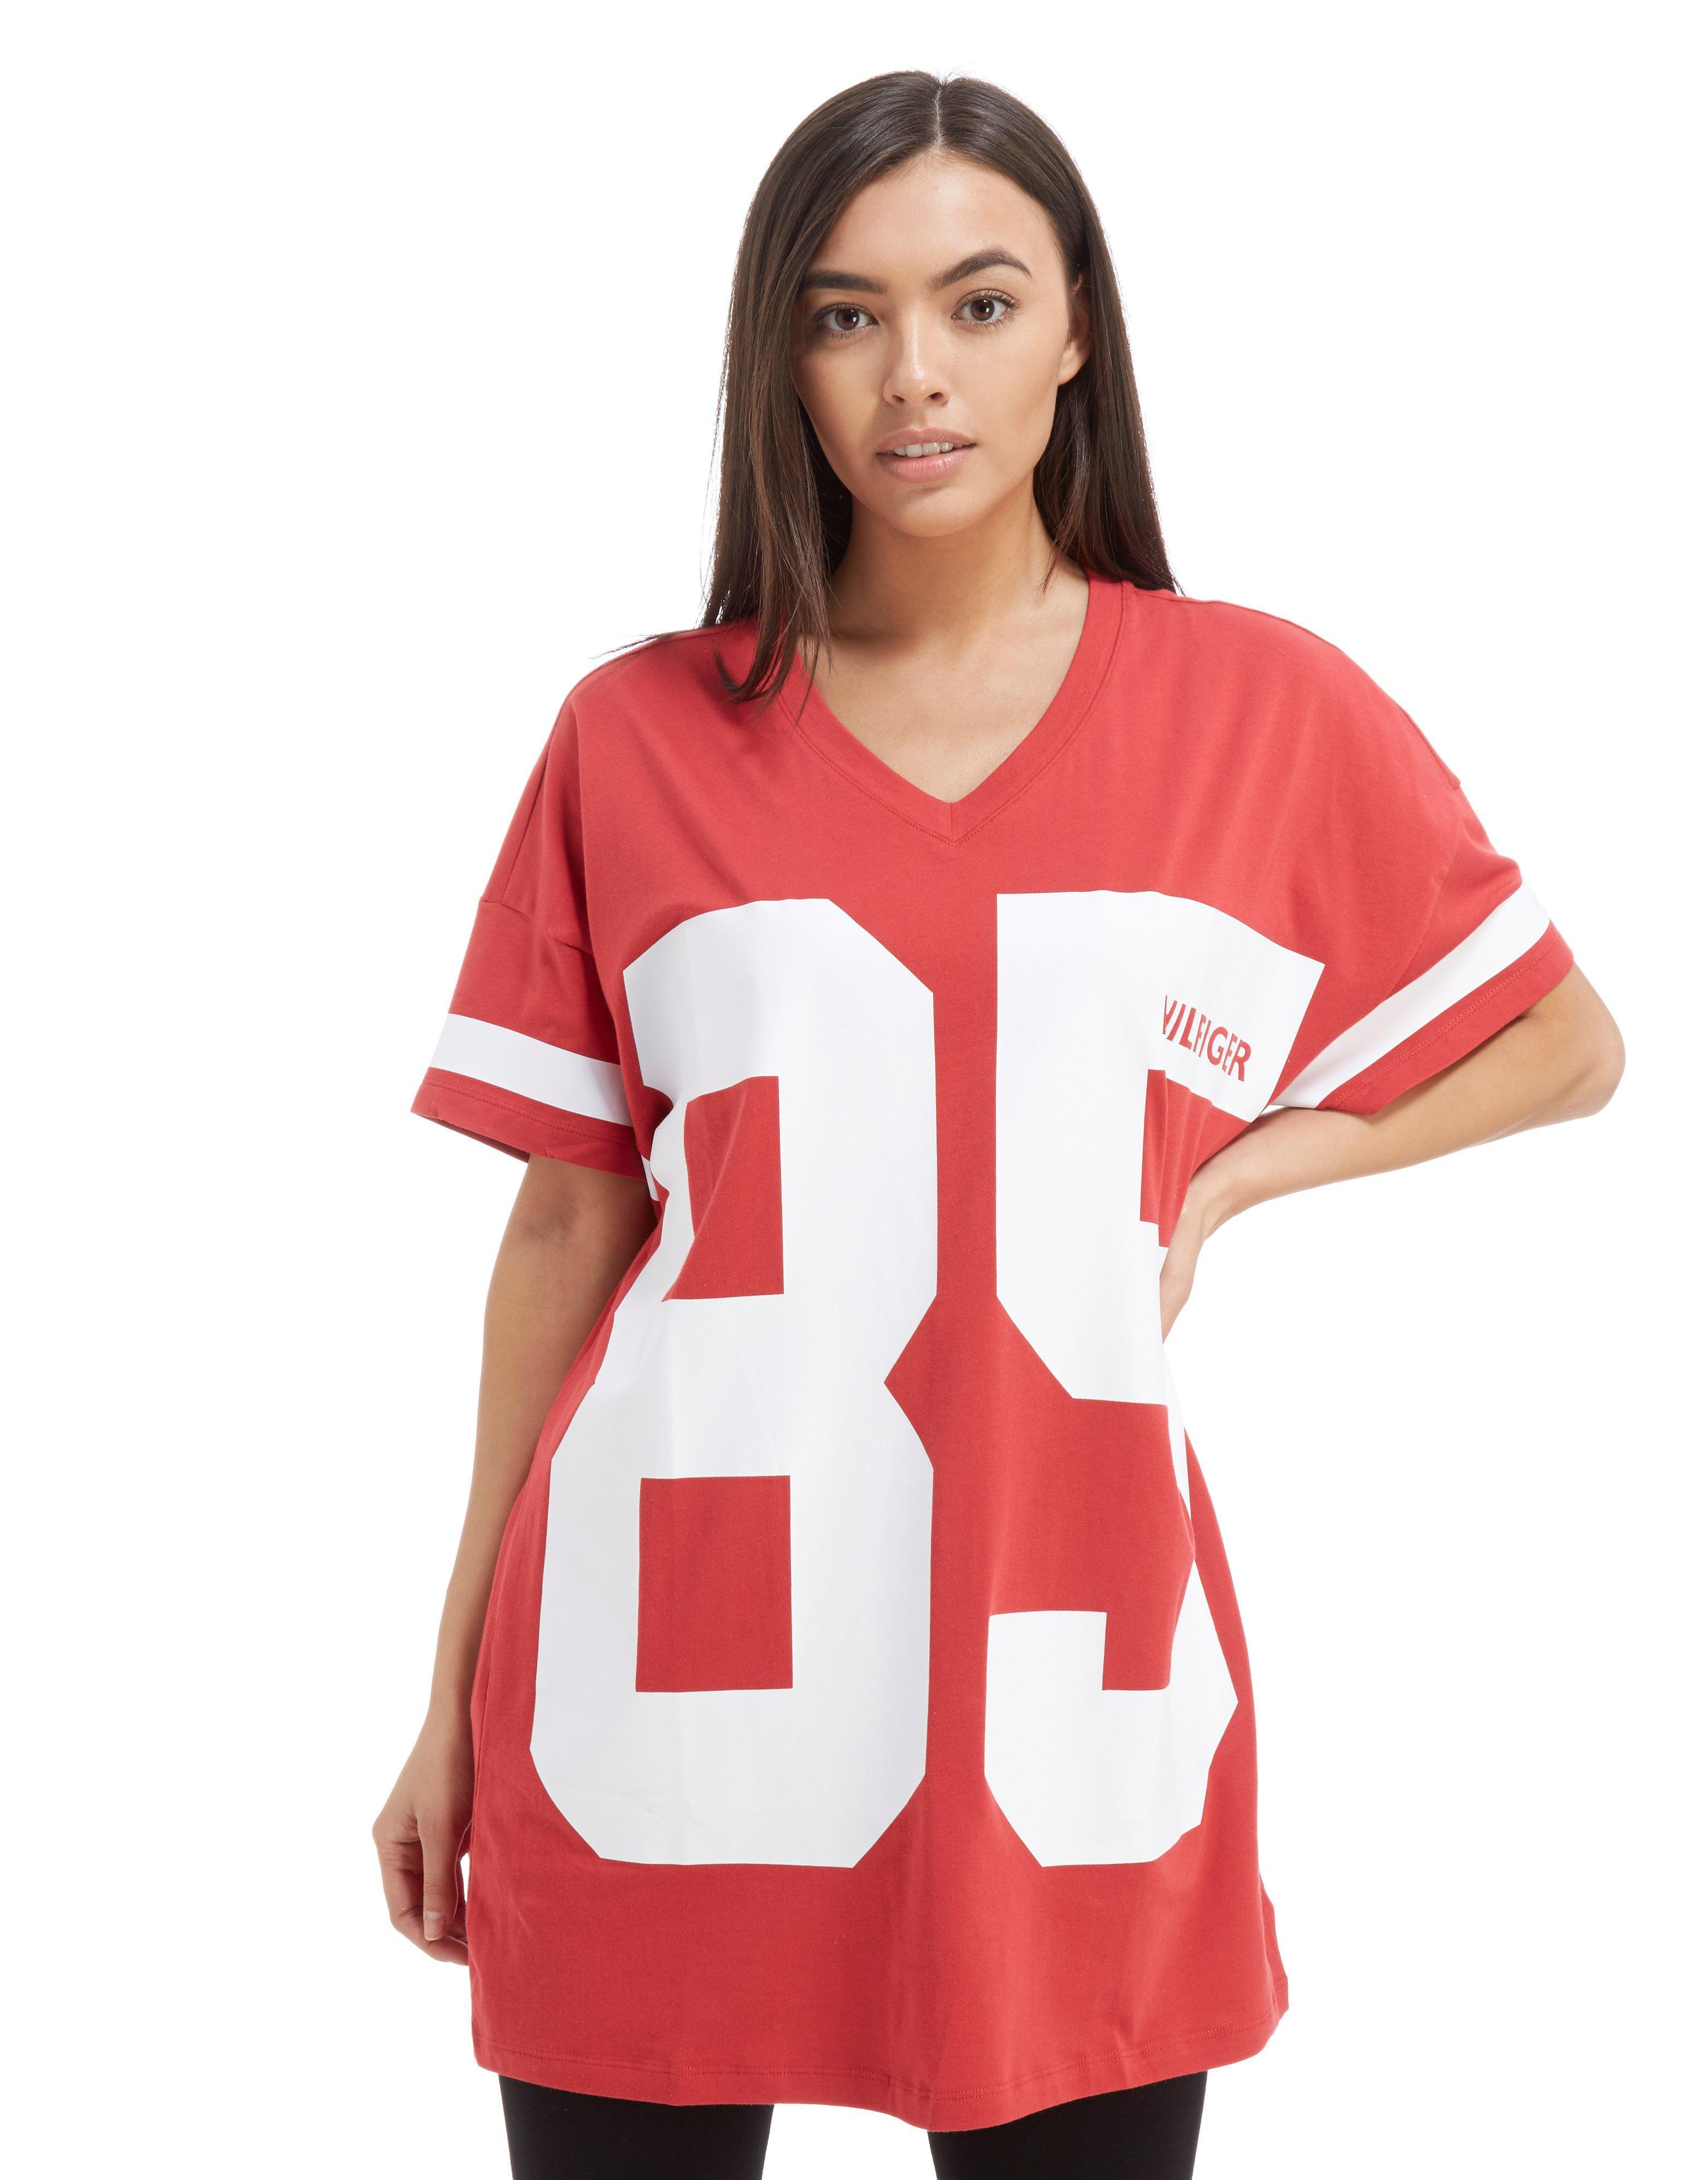 69f5411a49 Tommy Hilfiger 85' Longline T-shirt in Red - Lyst